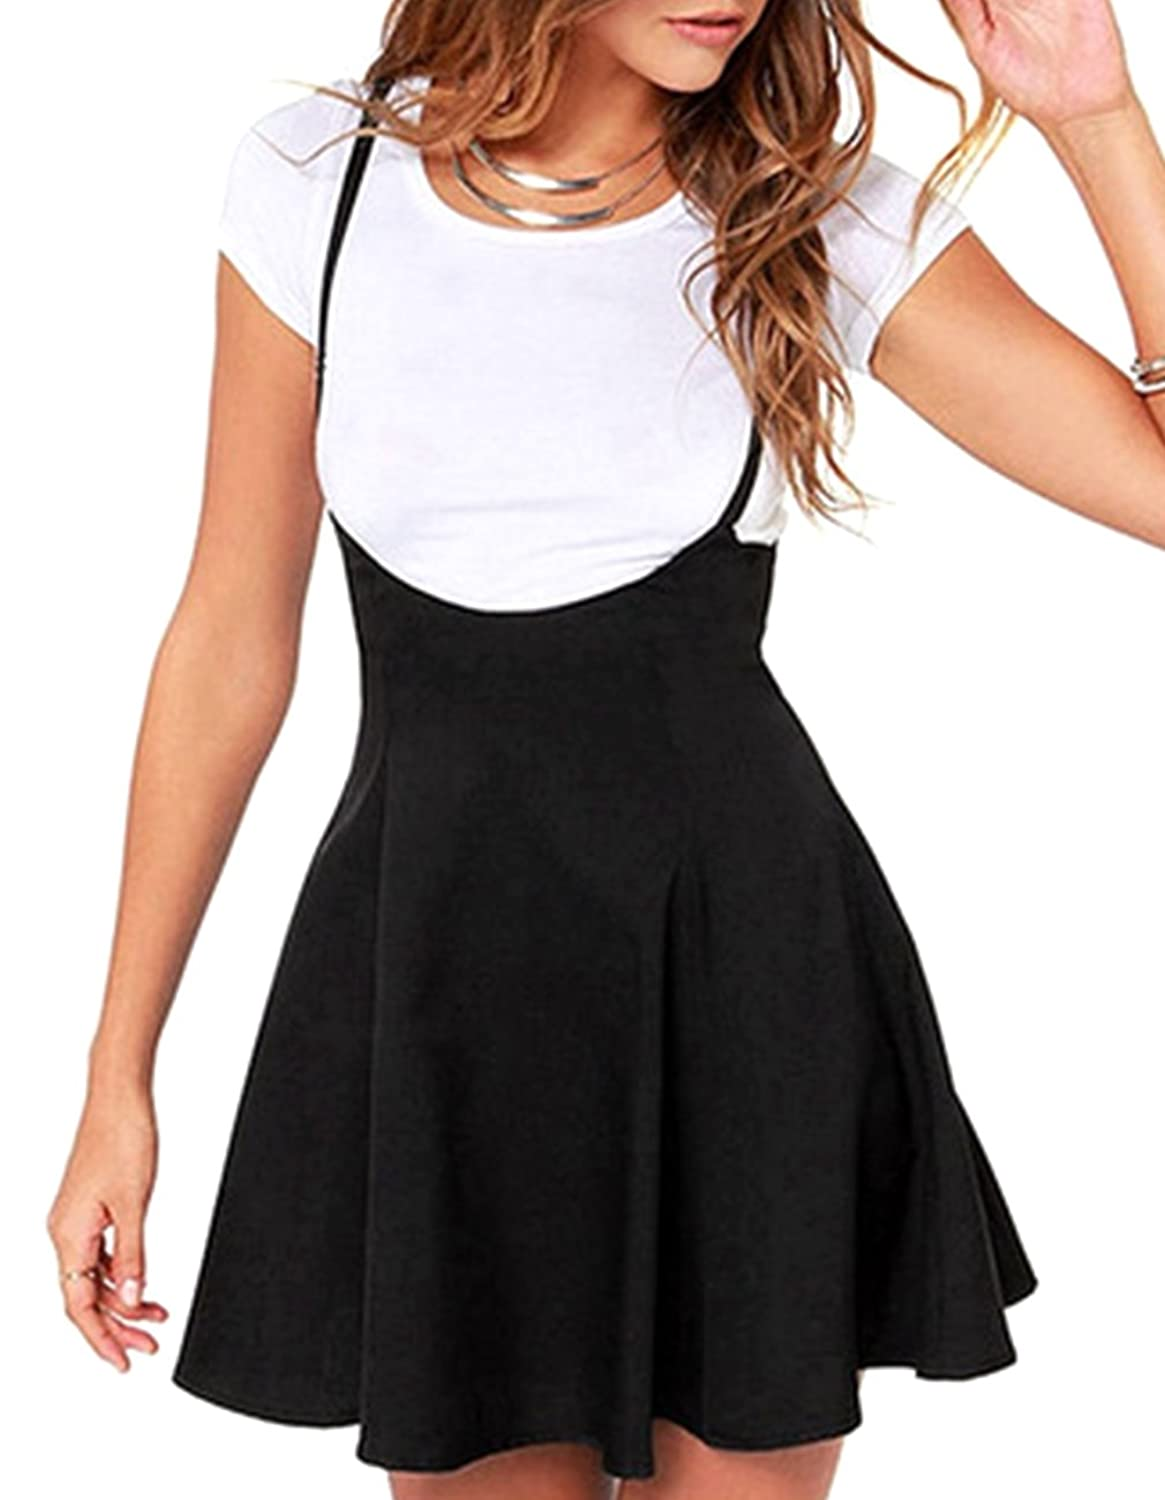 3f920ecf147 Women s Suspender Skirts Basic High Waist Versatile Flared Skater Skirt  Adjustable straps design